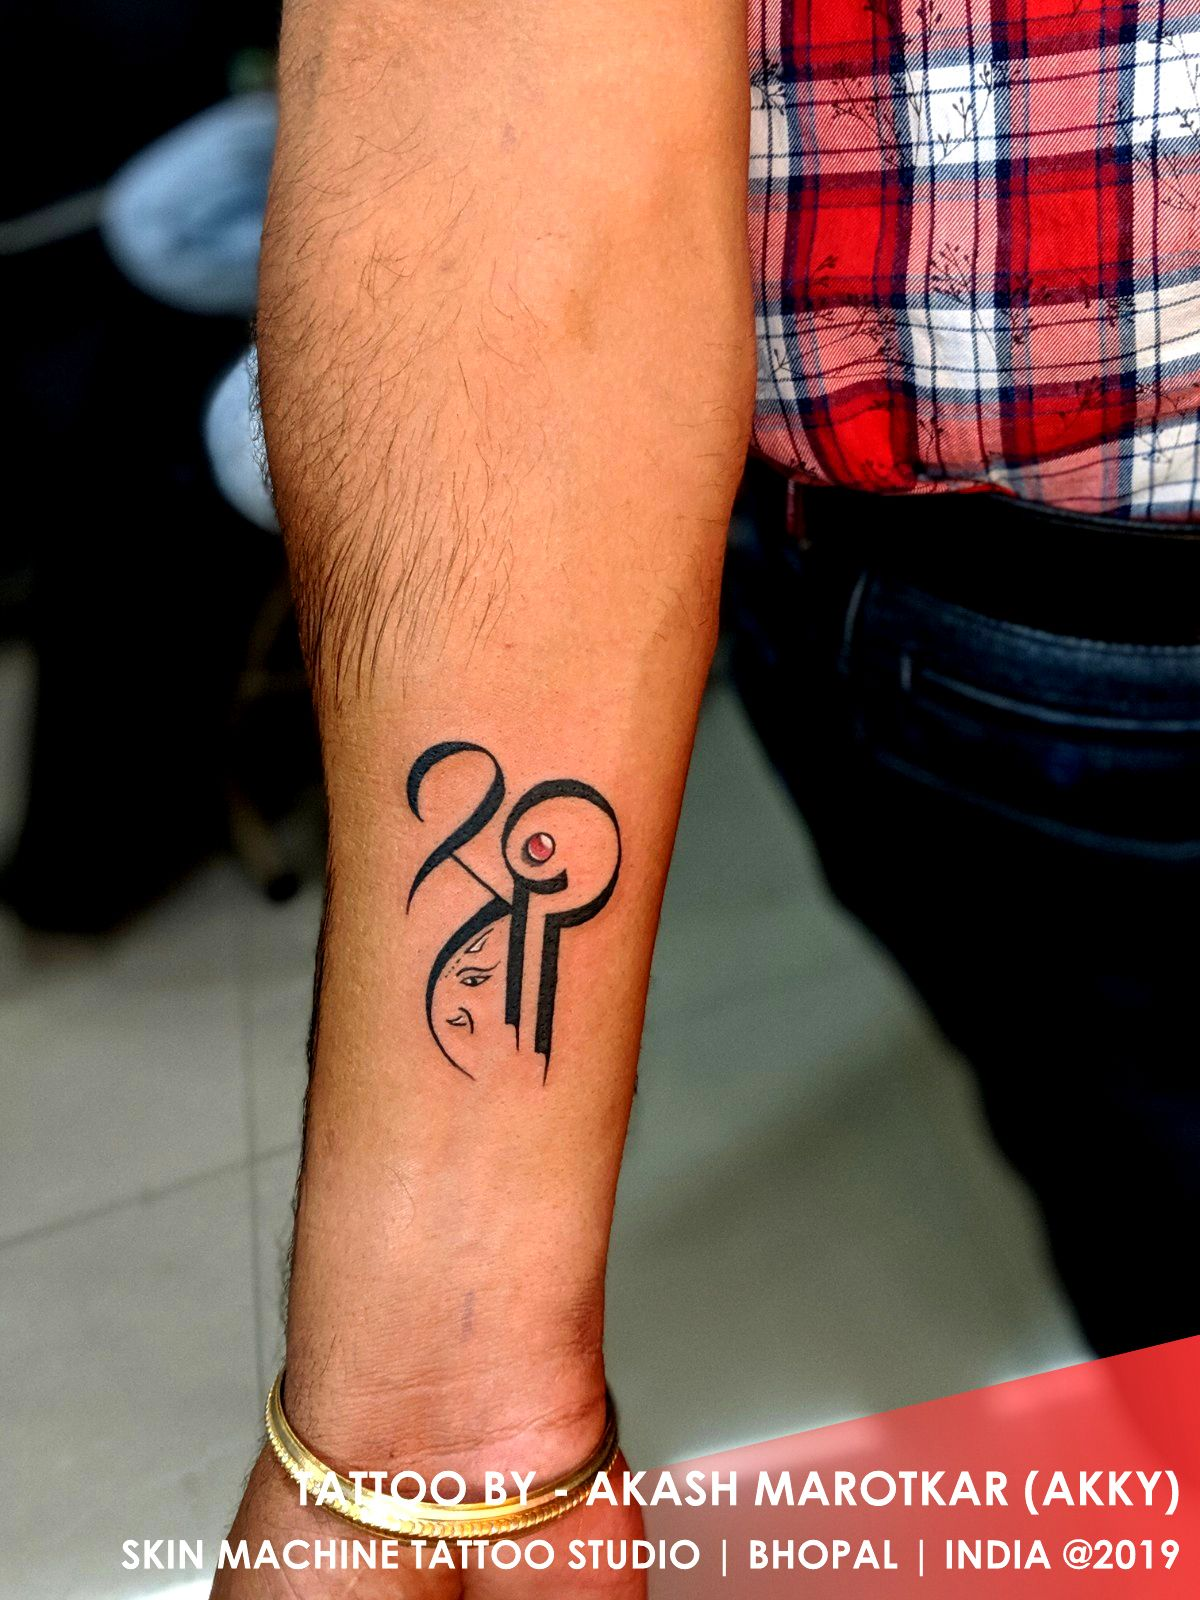 Shree Ganesh In 2020 Tattoos Tattoo Studio Ganesh Tattoo